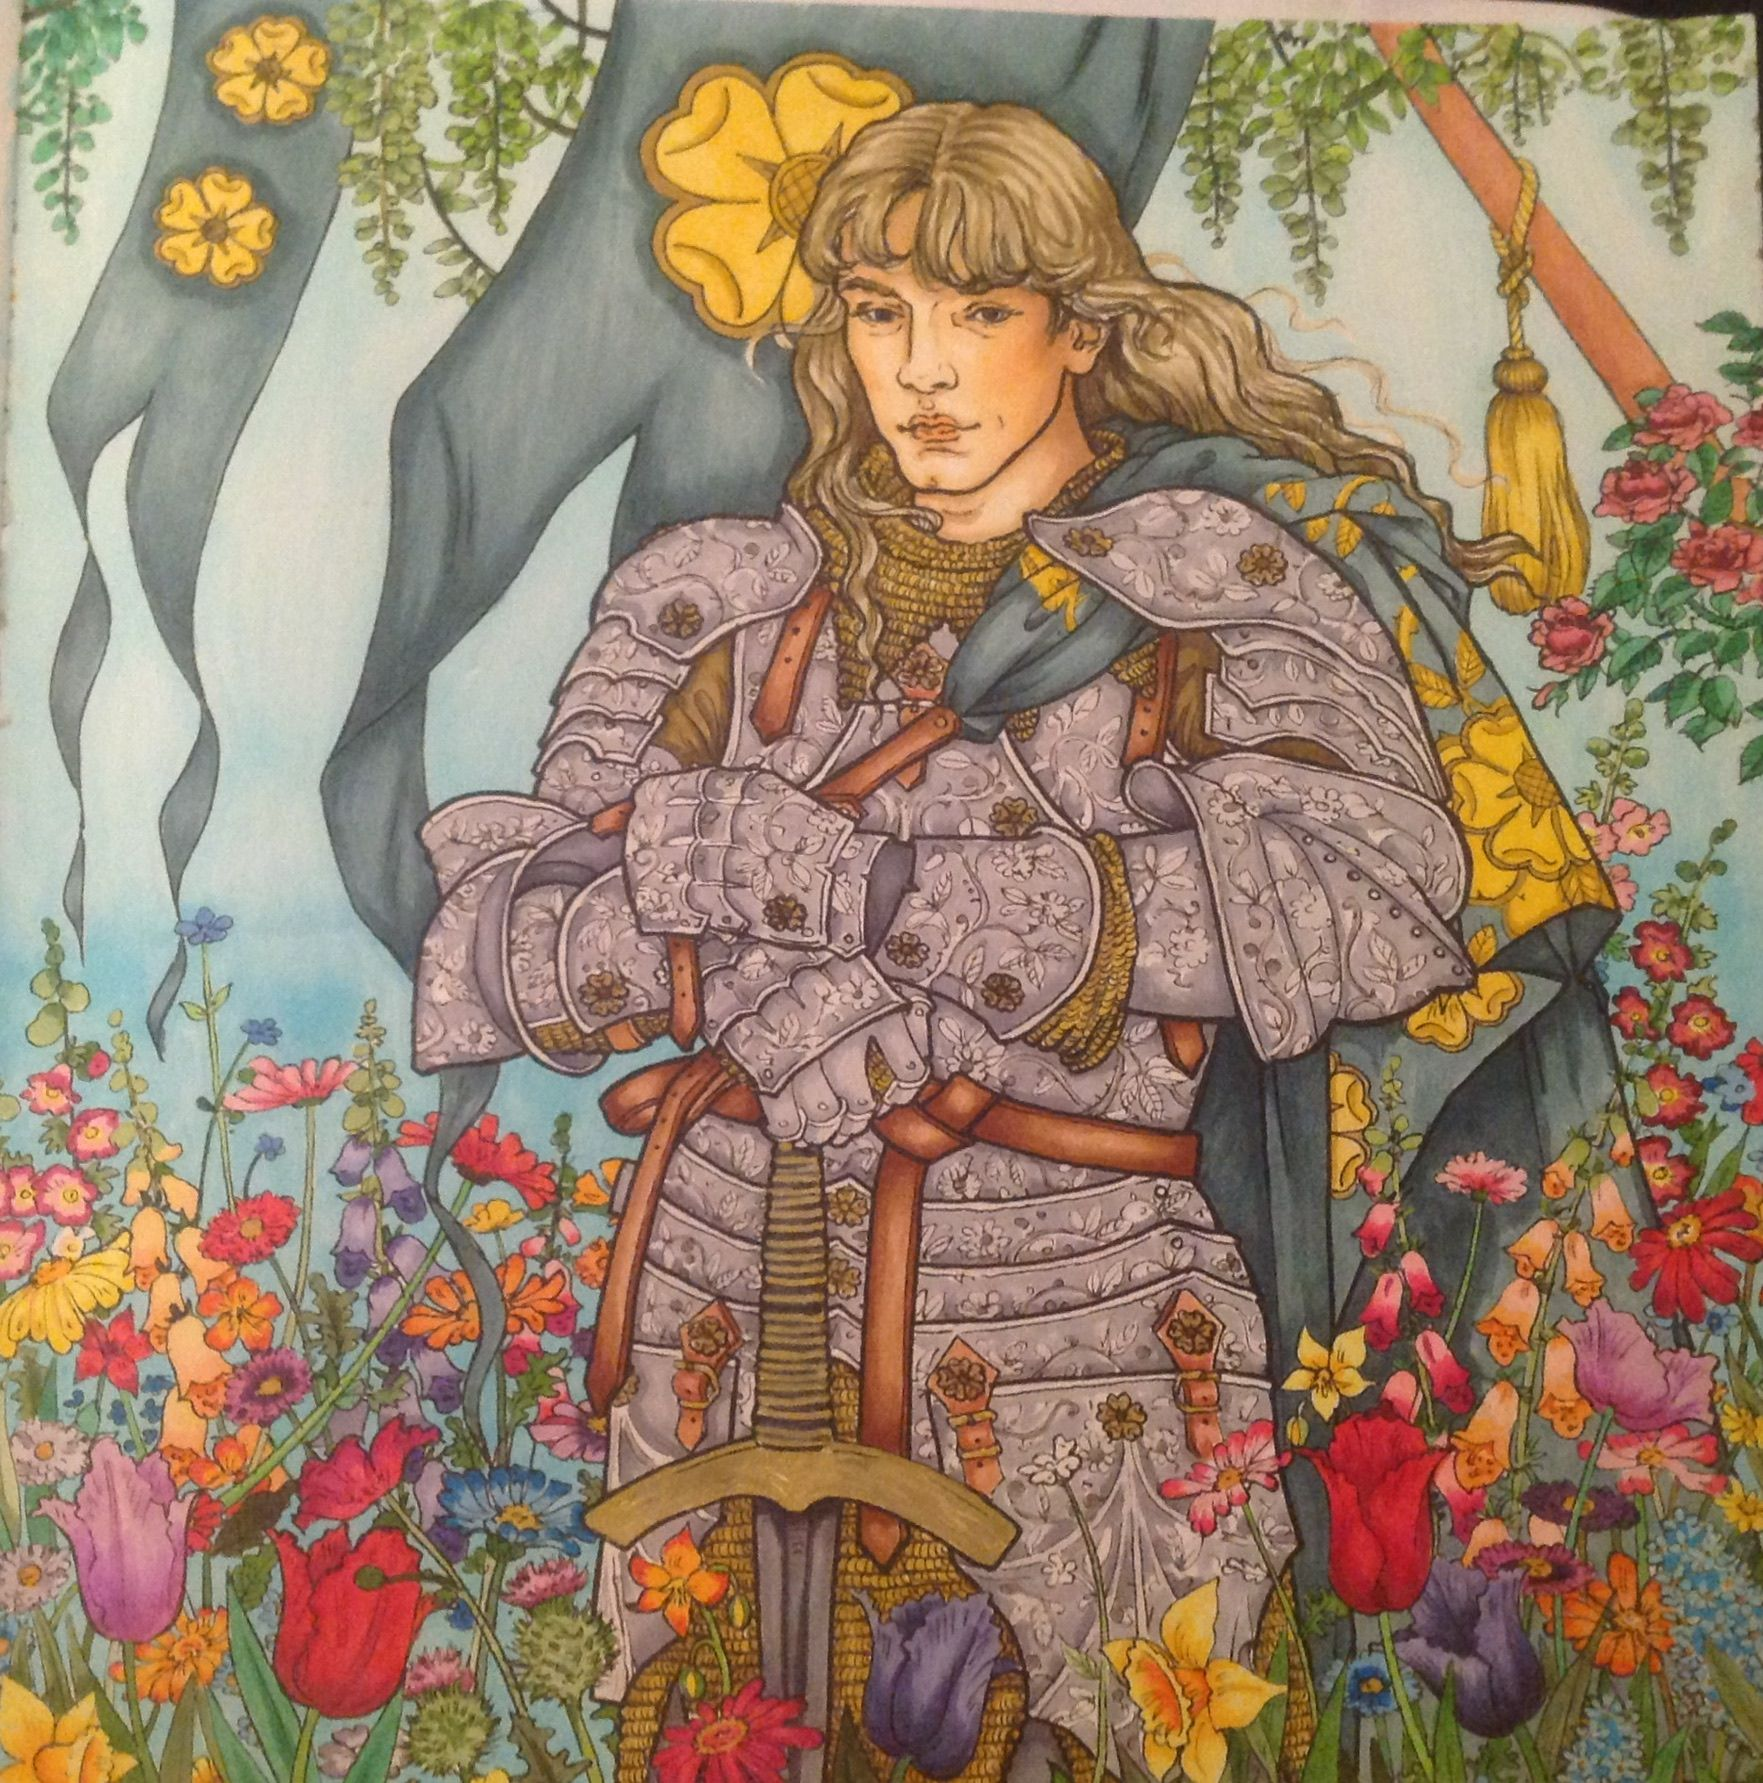 Copic Coloring Game Of Thrones Coloring Book Colored By Sonya Sena